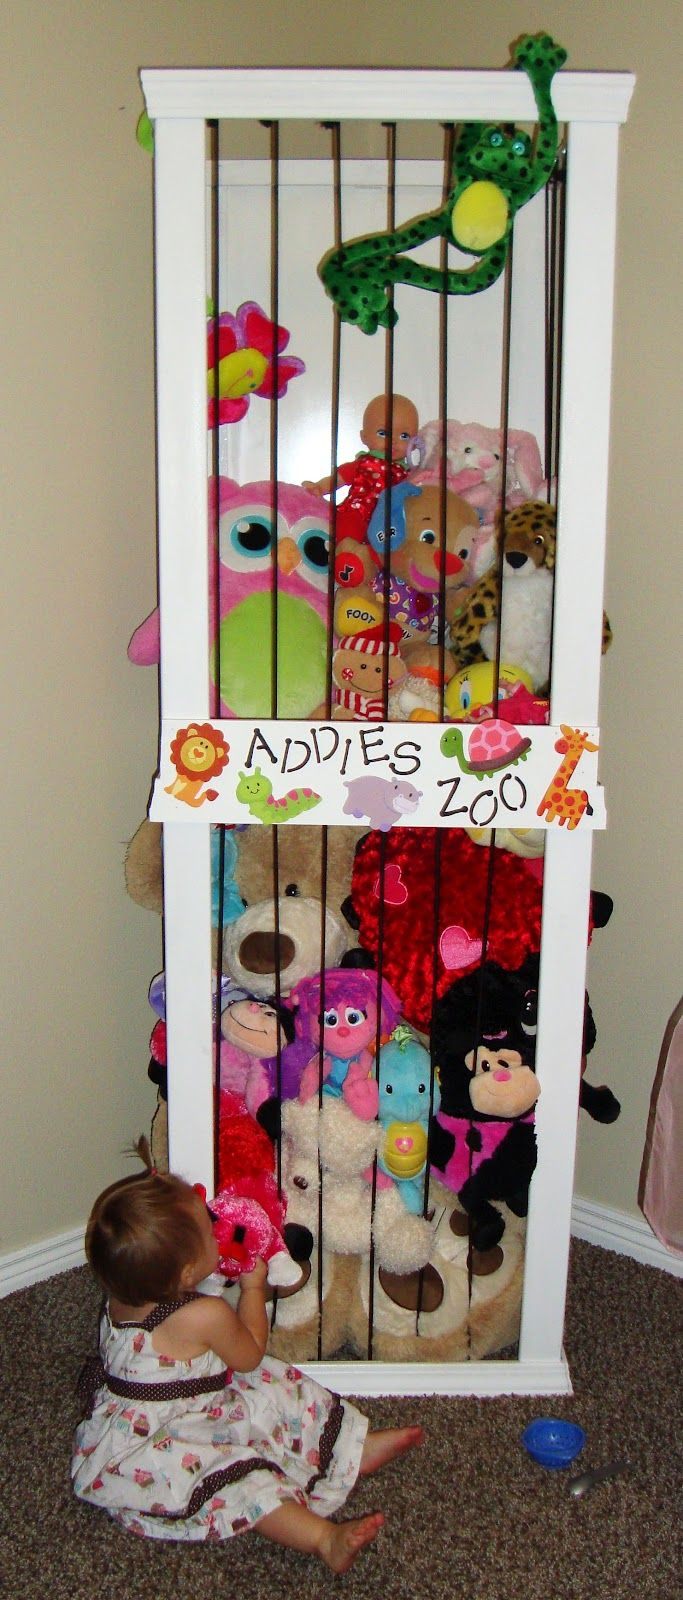 Looking For Adorable Stuffed Animal Storage Follow This